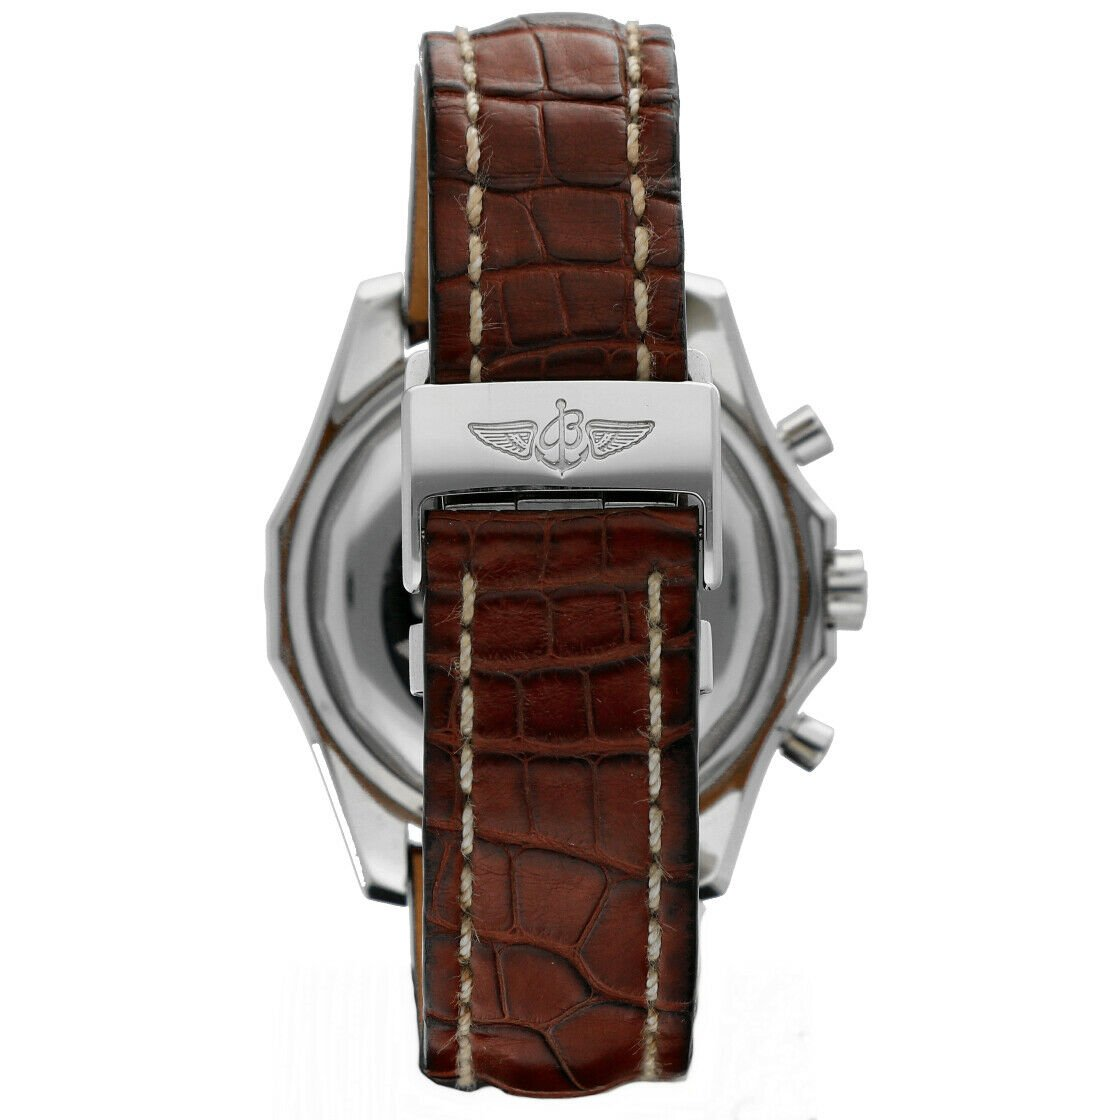 Breitling A13362 Bentley Green Dial 43mm Chrono Leather Automatic Mens Watch 133372522161 4